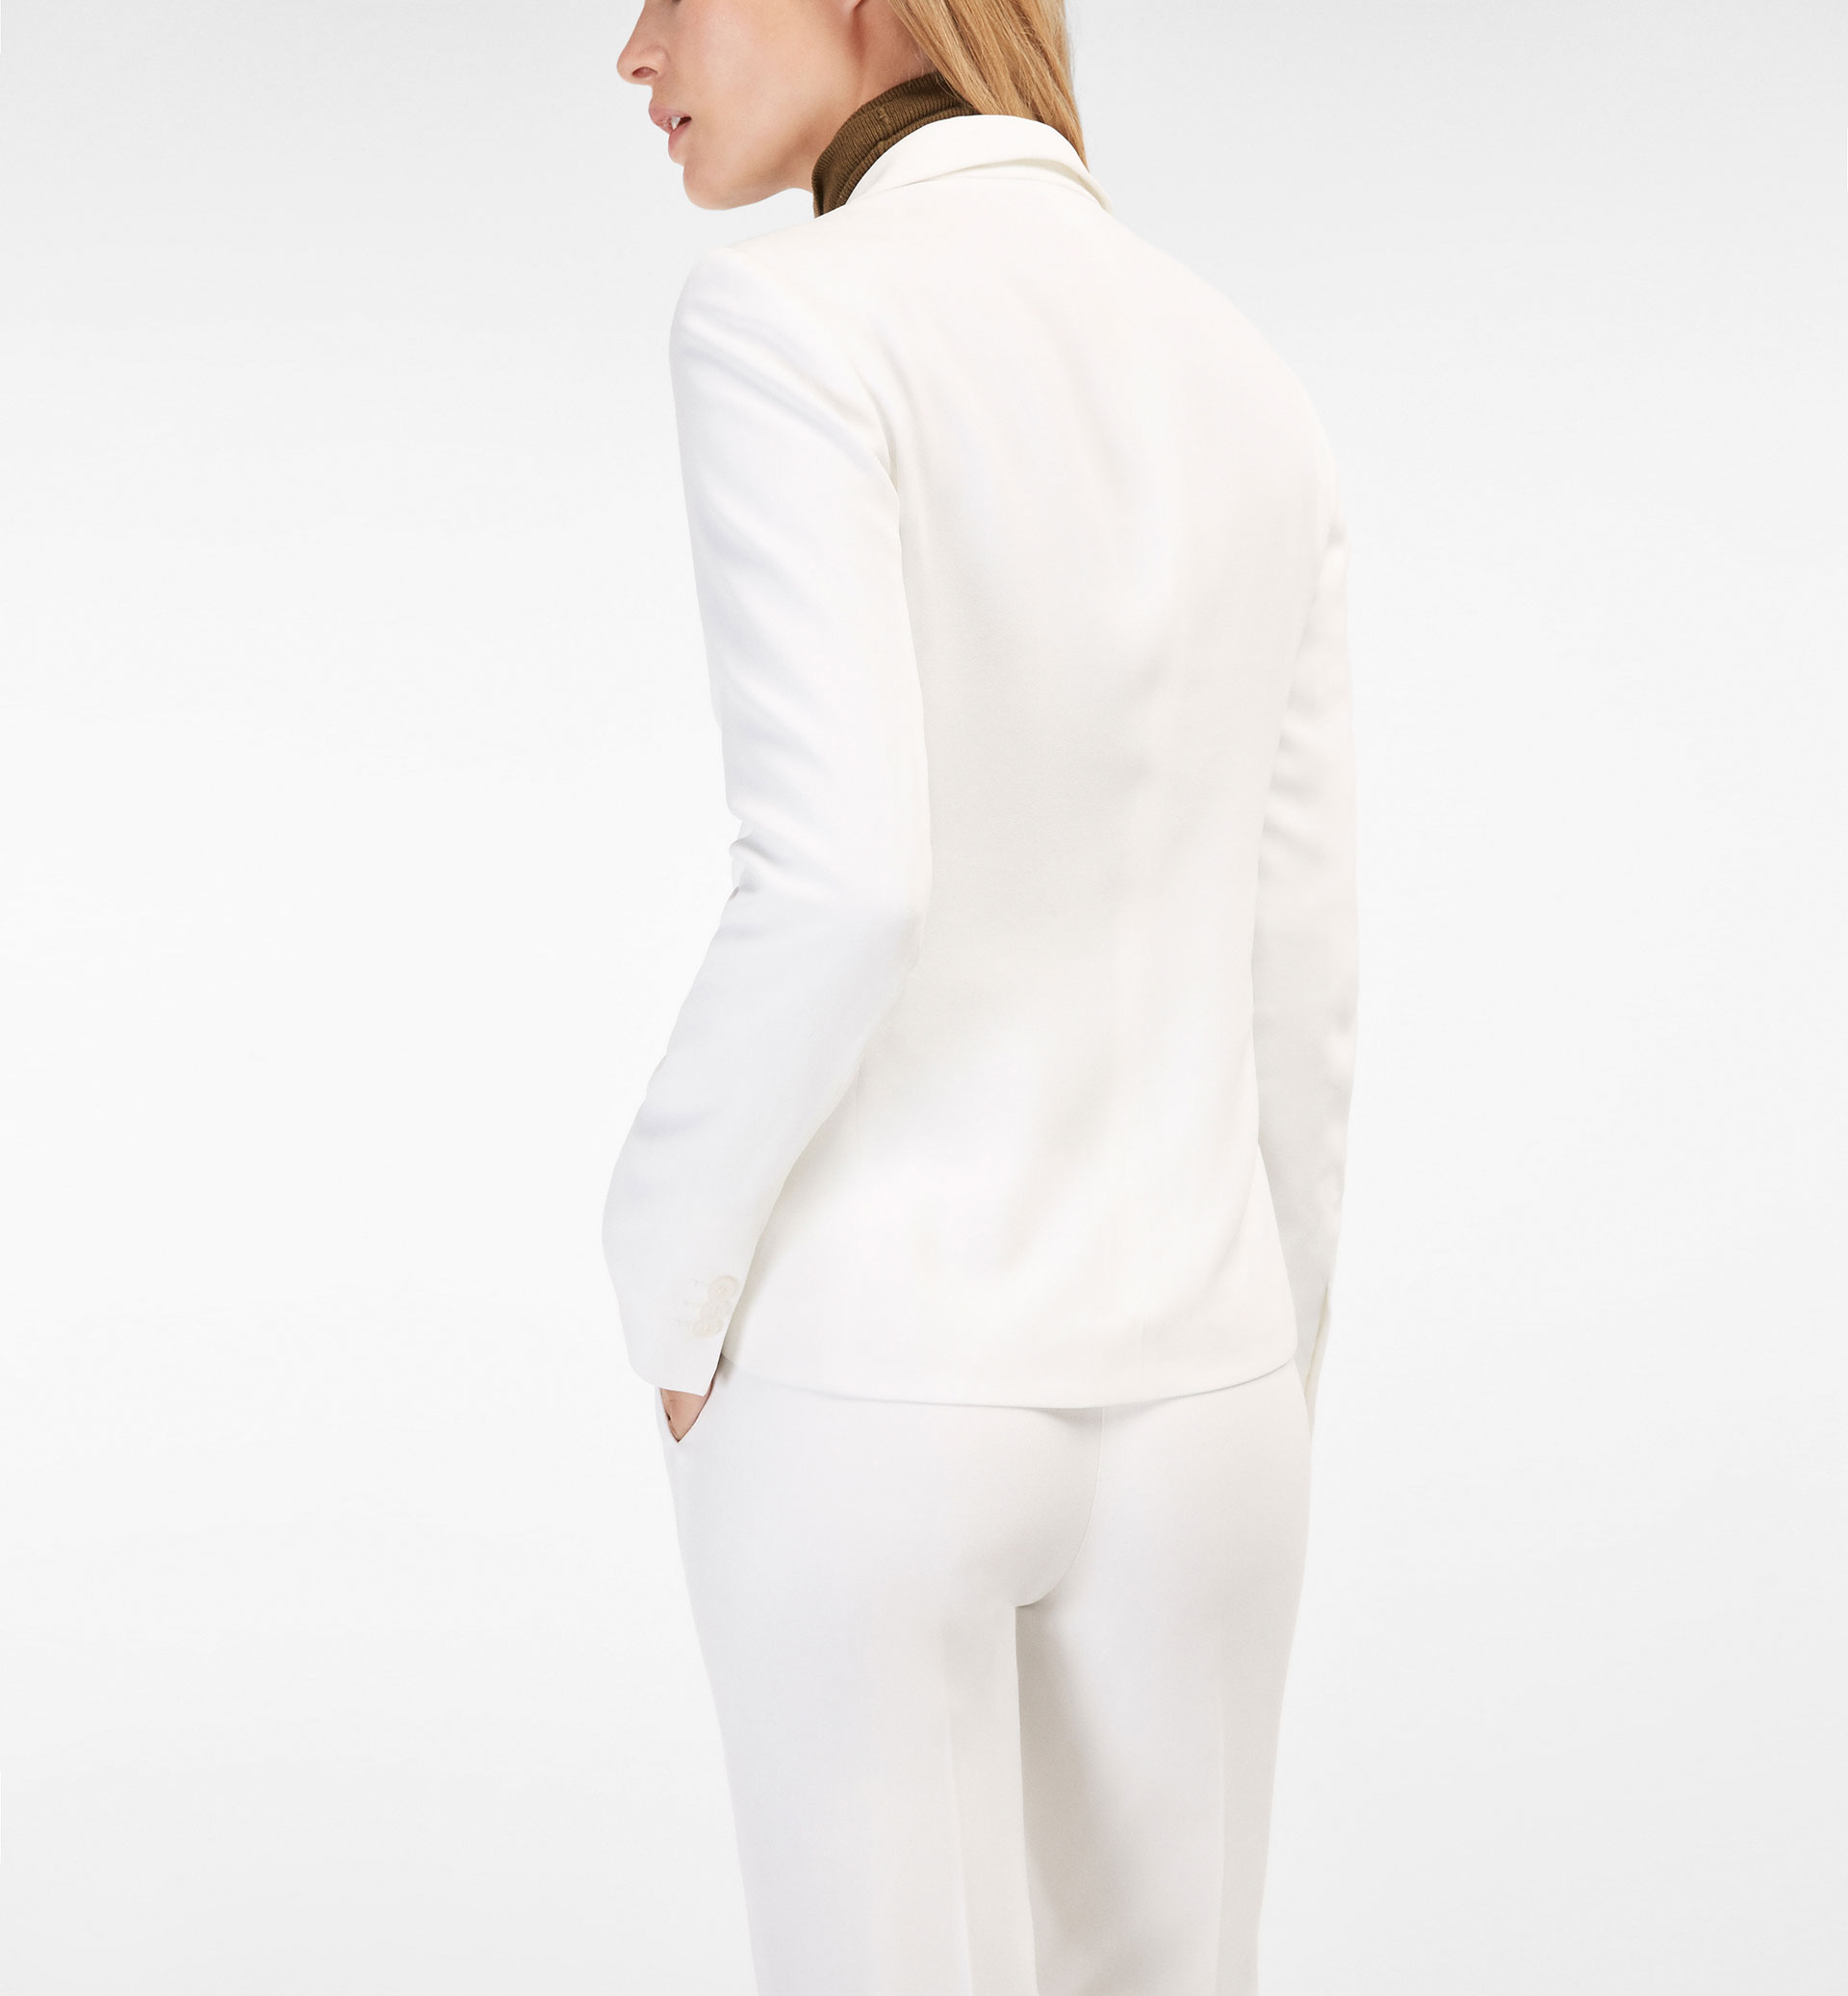 CREPE SUIT JACKET